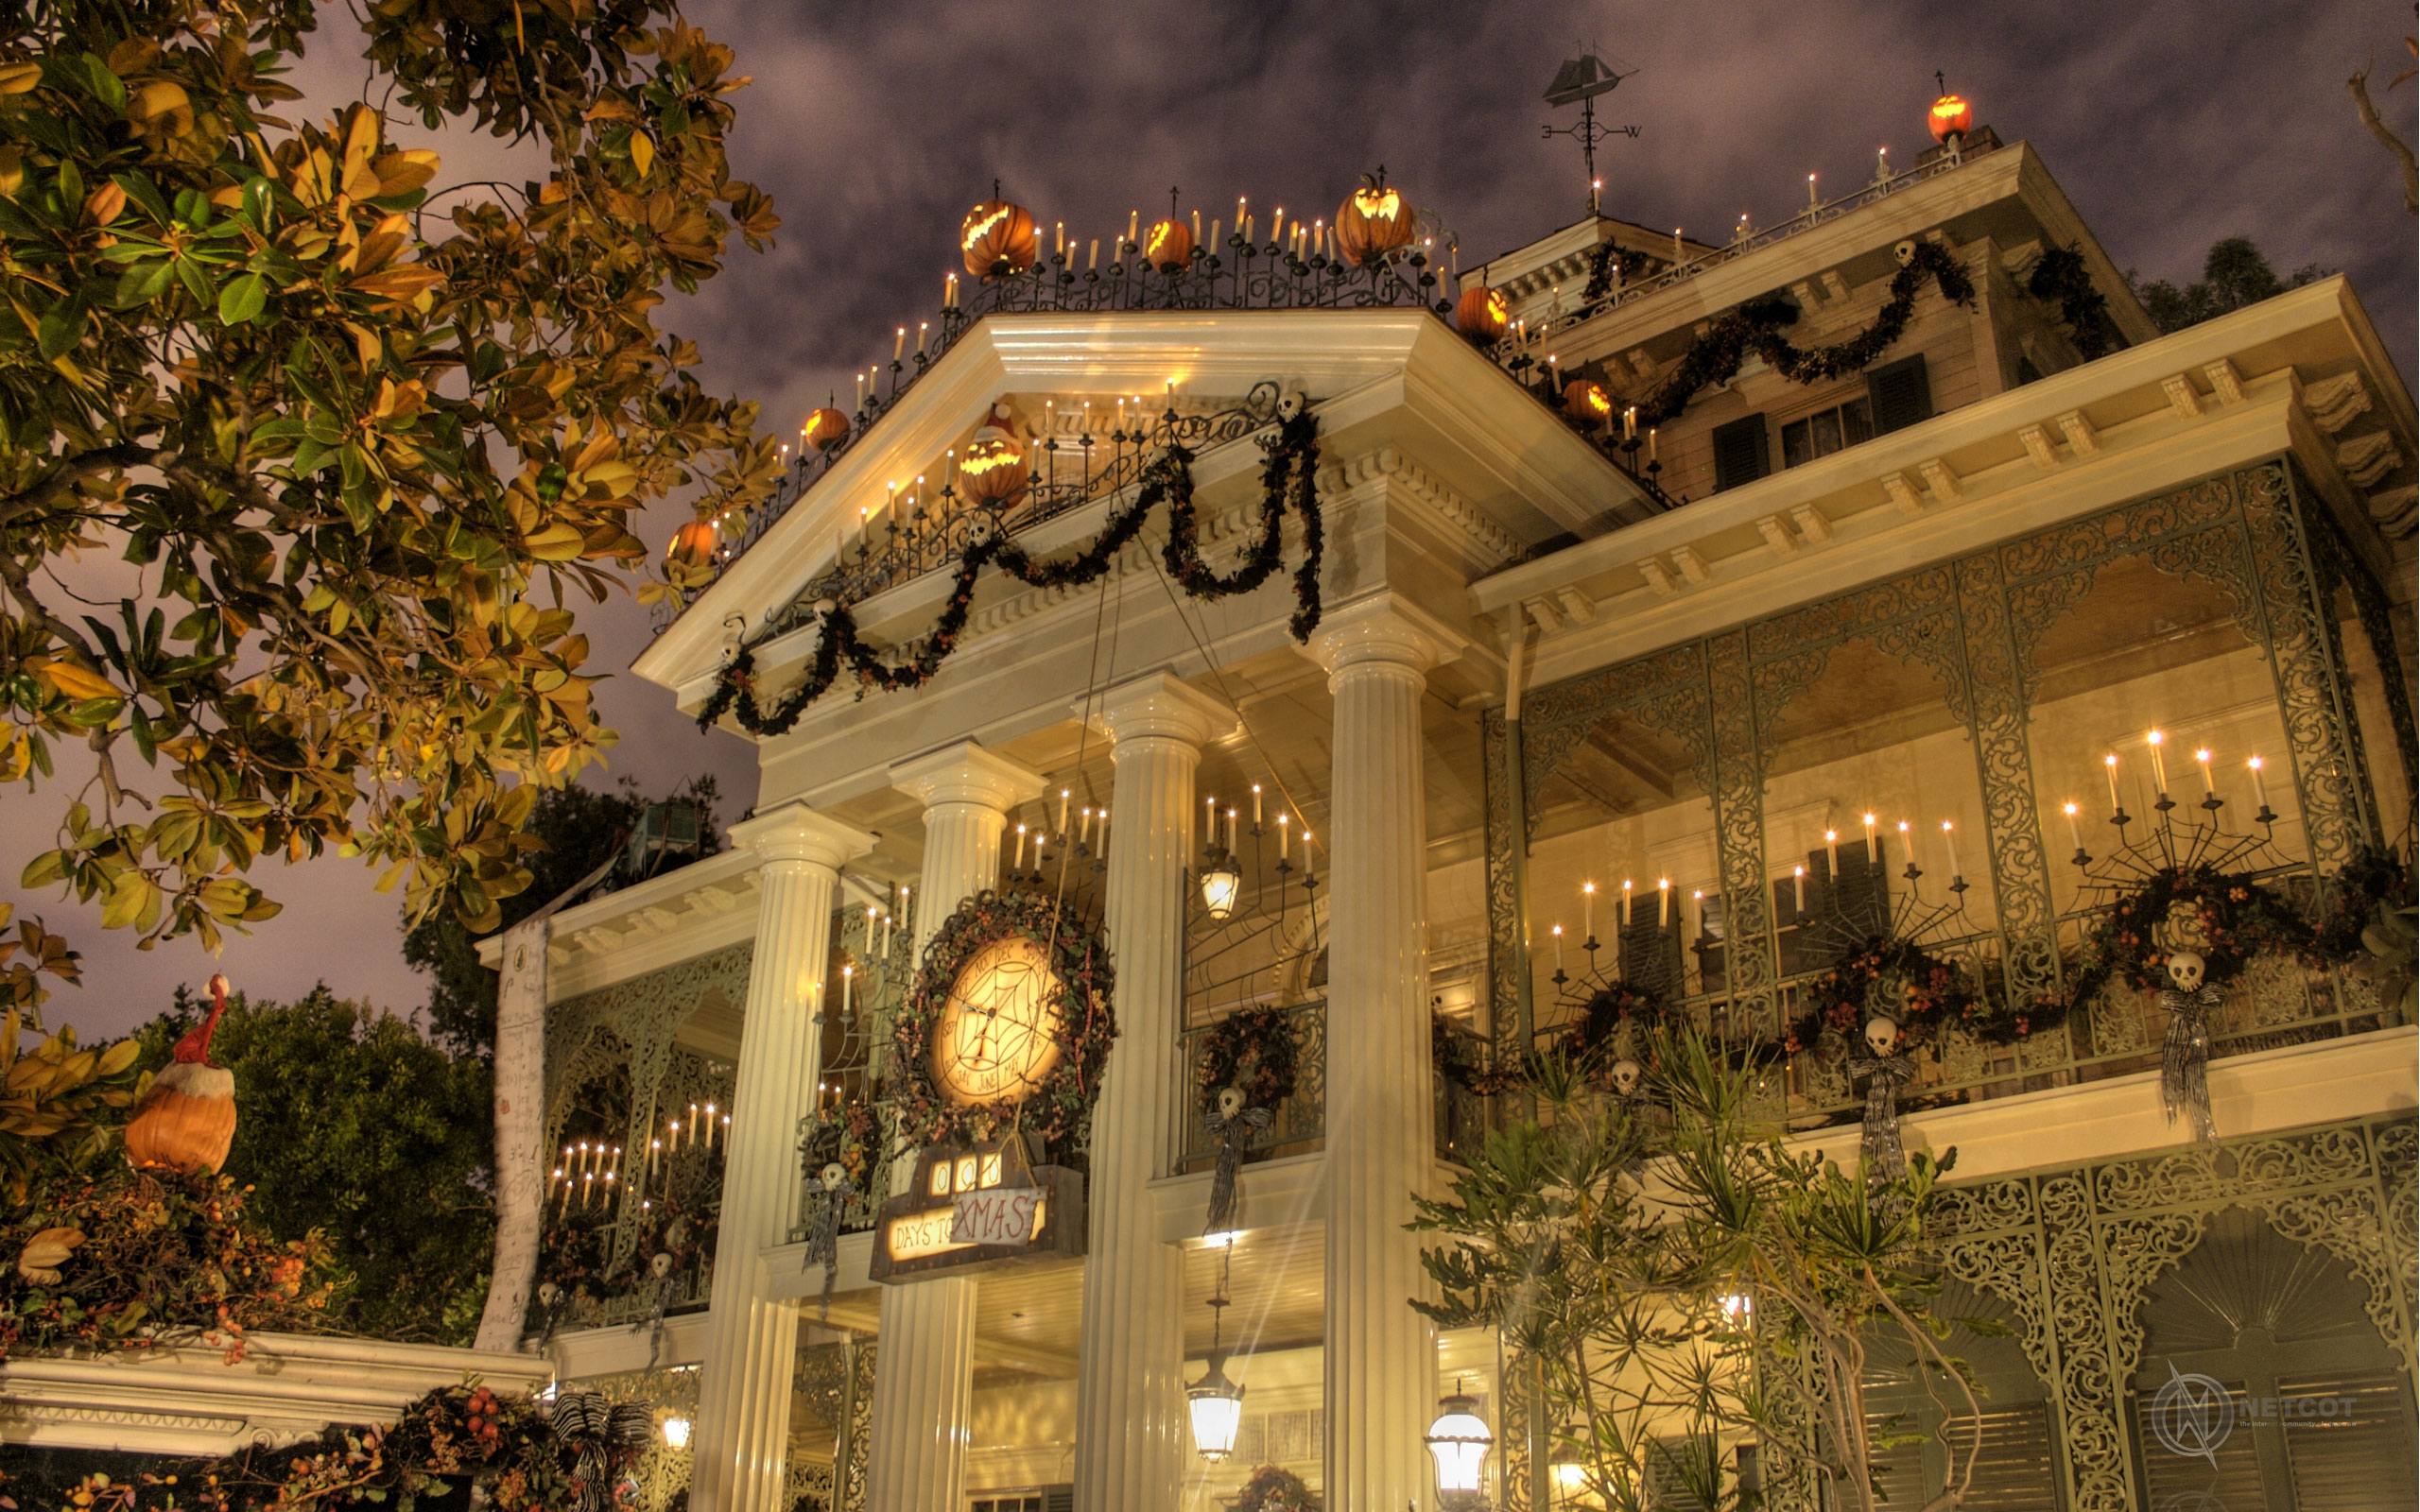 Disney\'s Nightmare Before Christmas Mansion Pictures, Photos, and ...